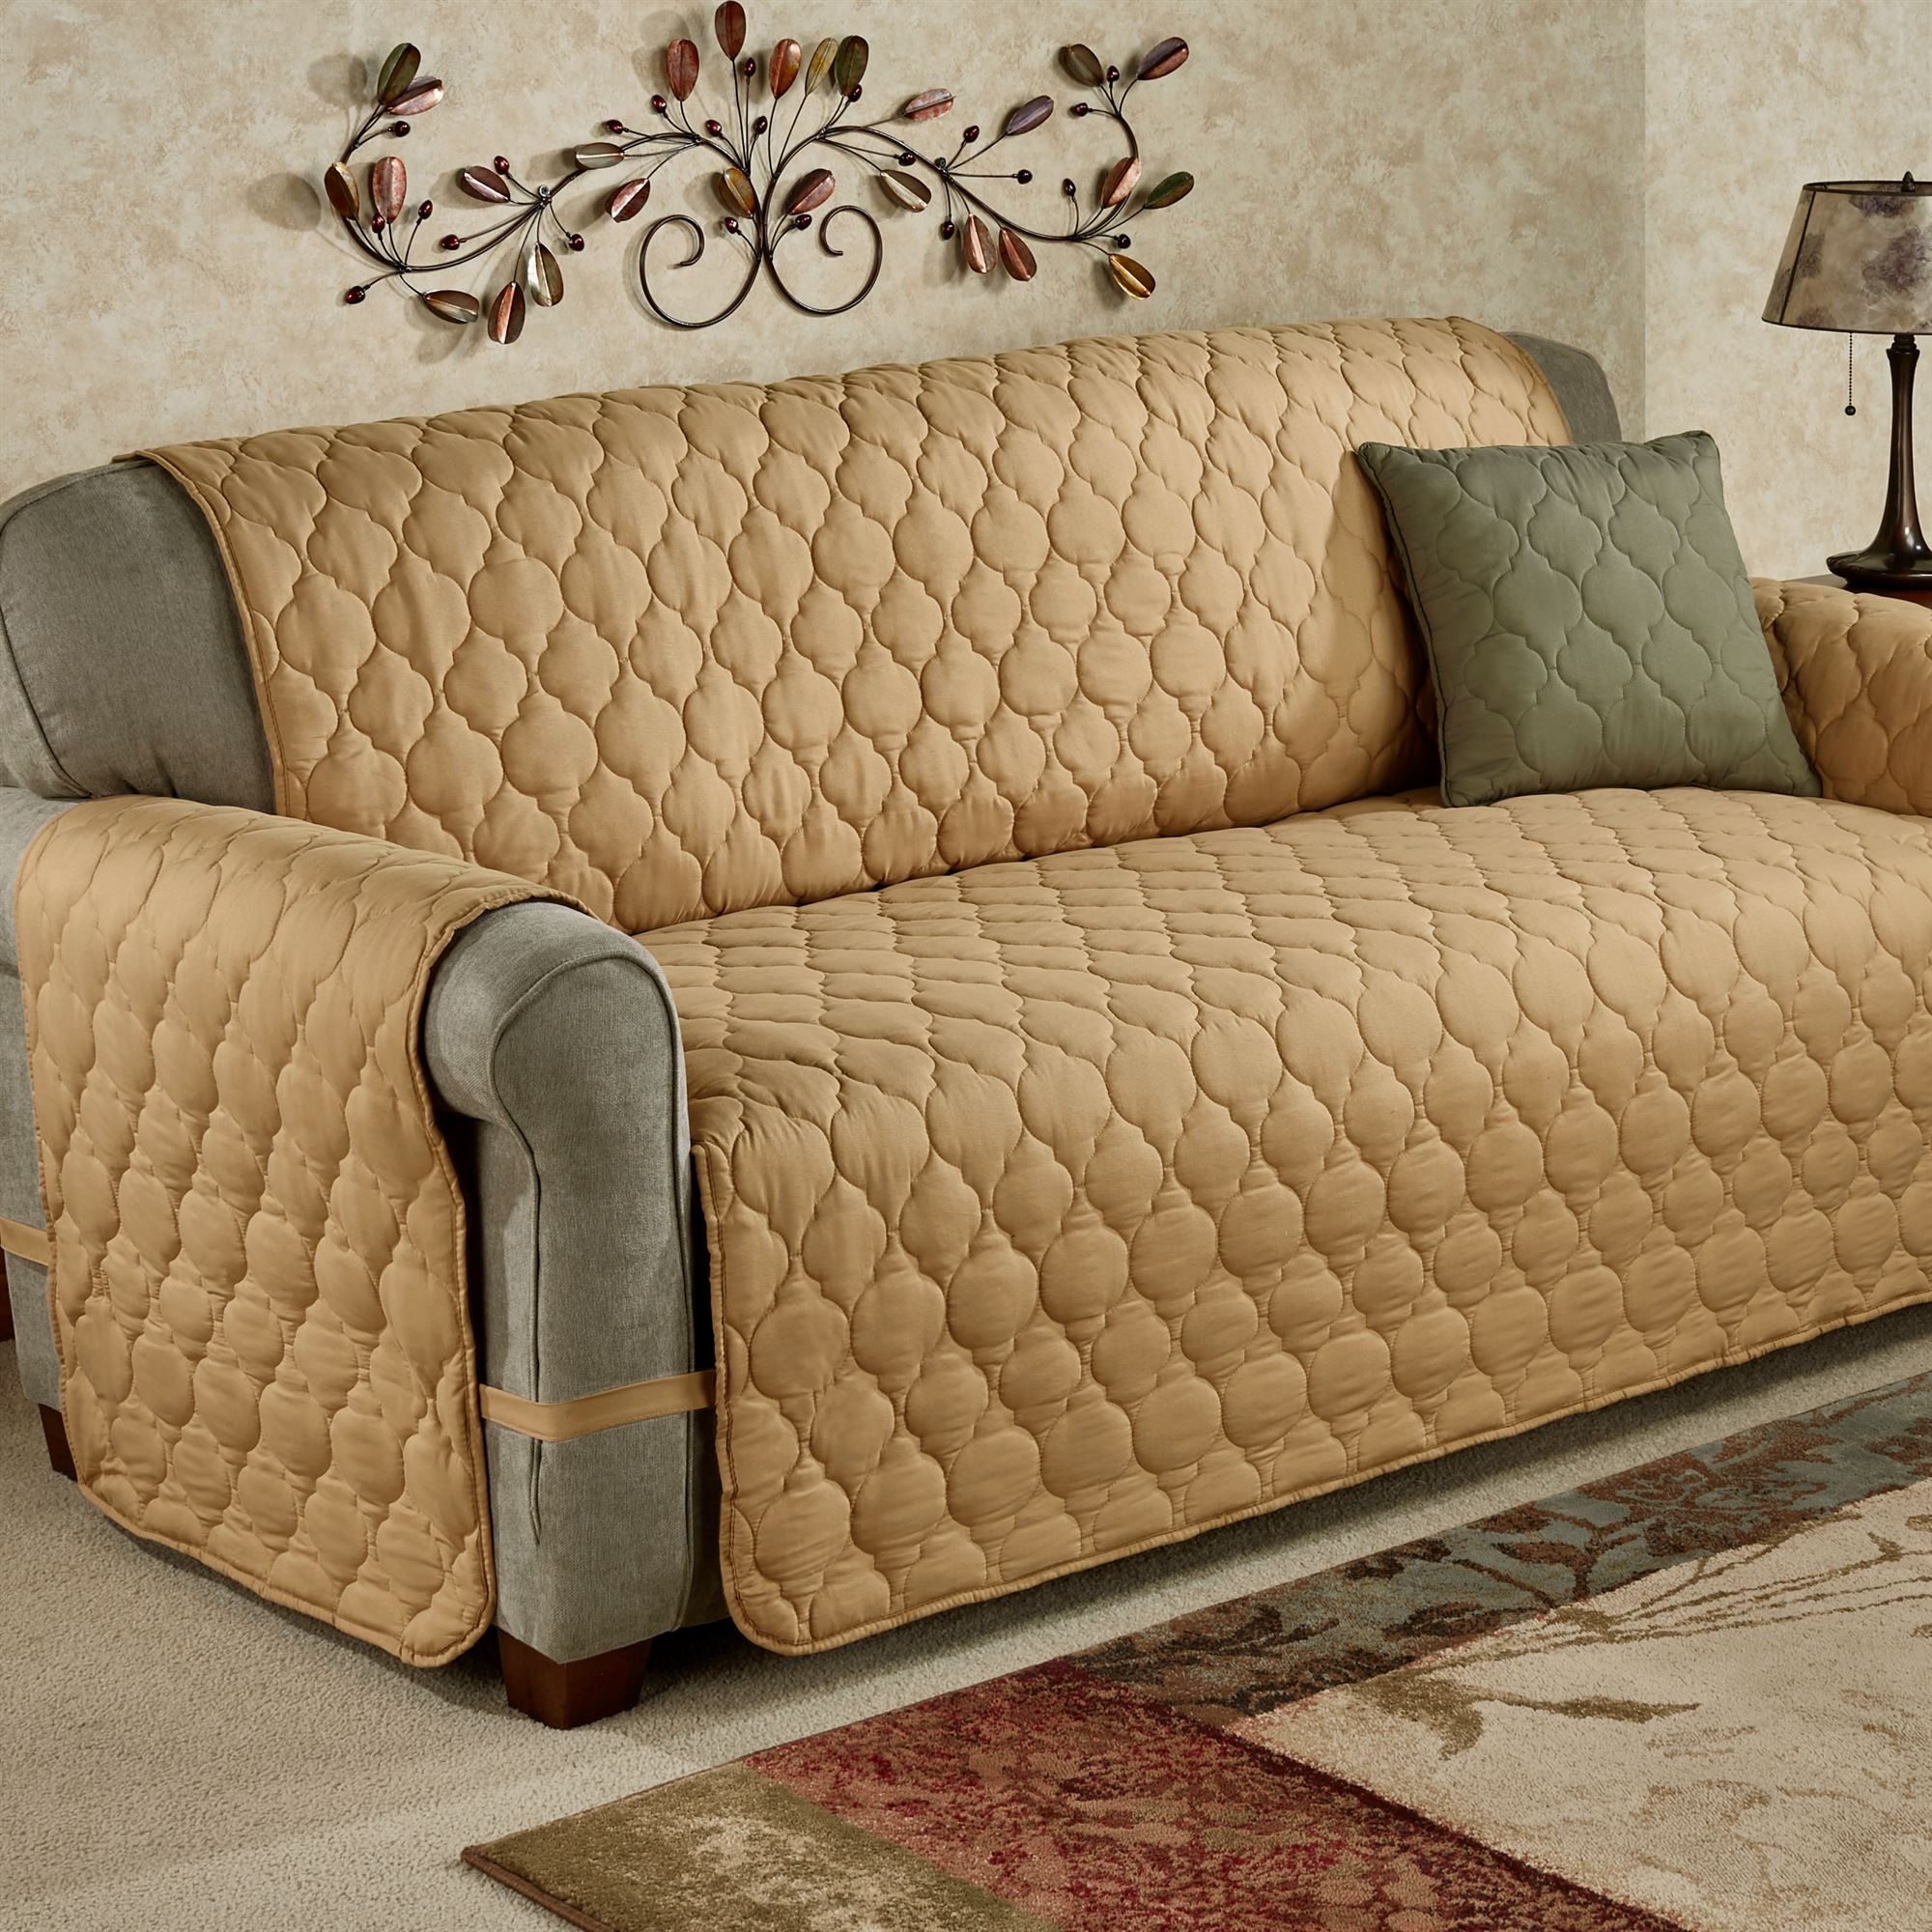 Admirable Paramount Solid Color Quilted Furniture Protectors Machost Co Dining Chair Design Ideas Machostcouk